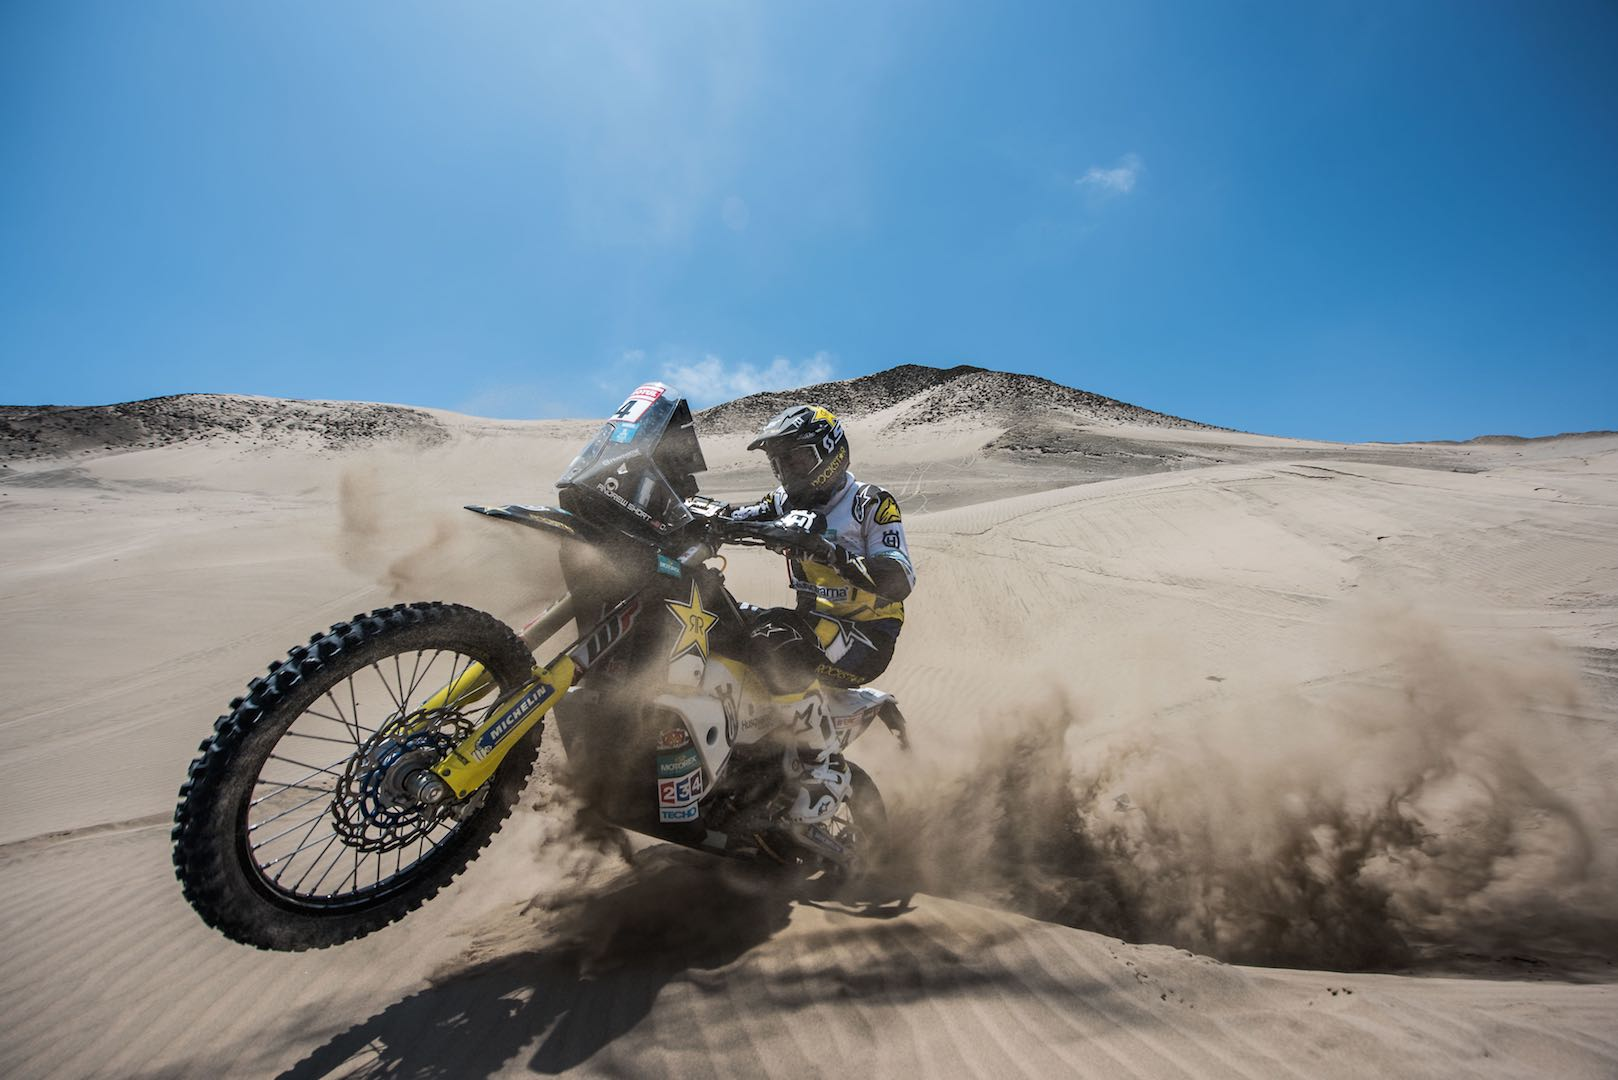 2018 Dakar Rally Motorcycle Preview: Husqvarna's Andrew Short